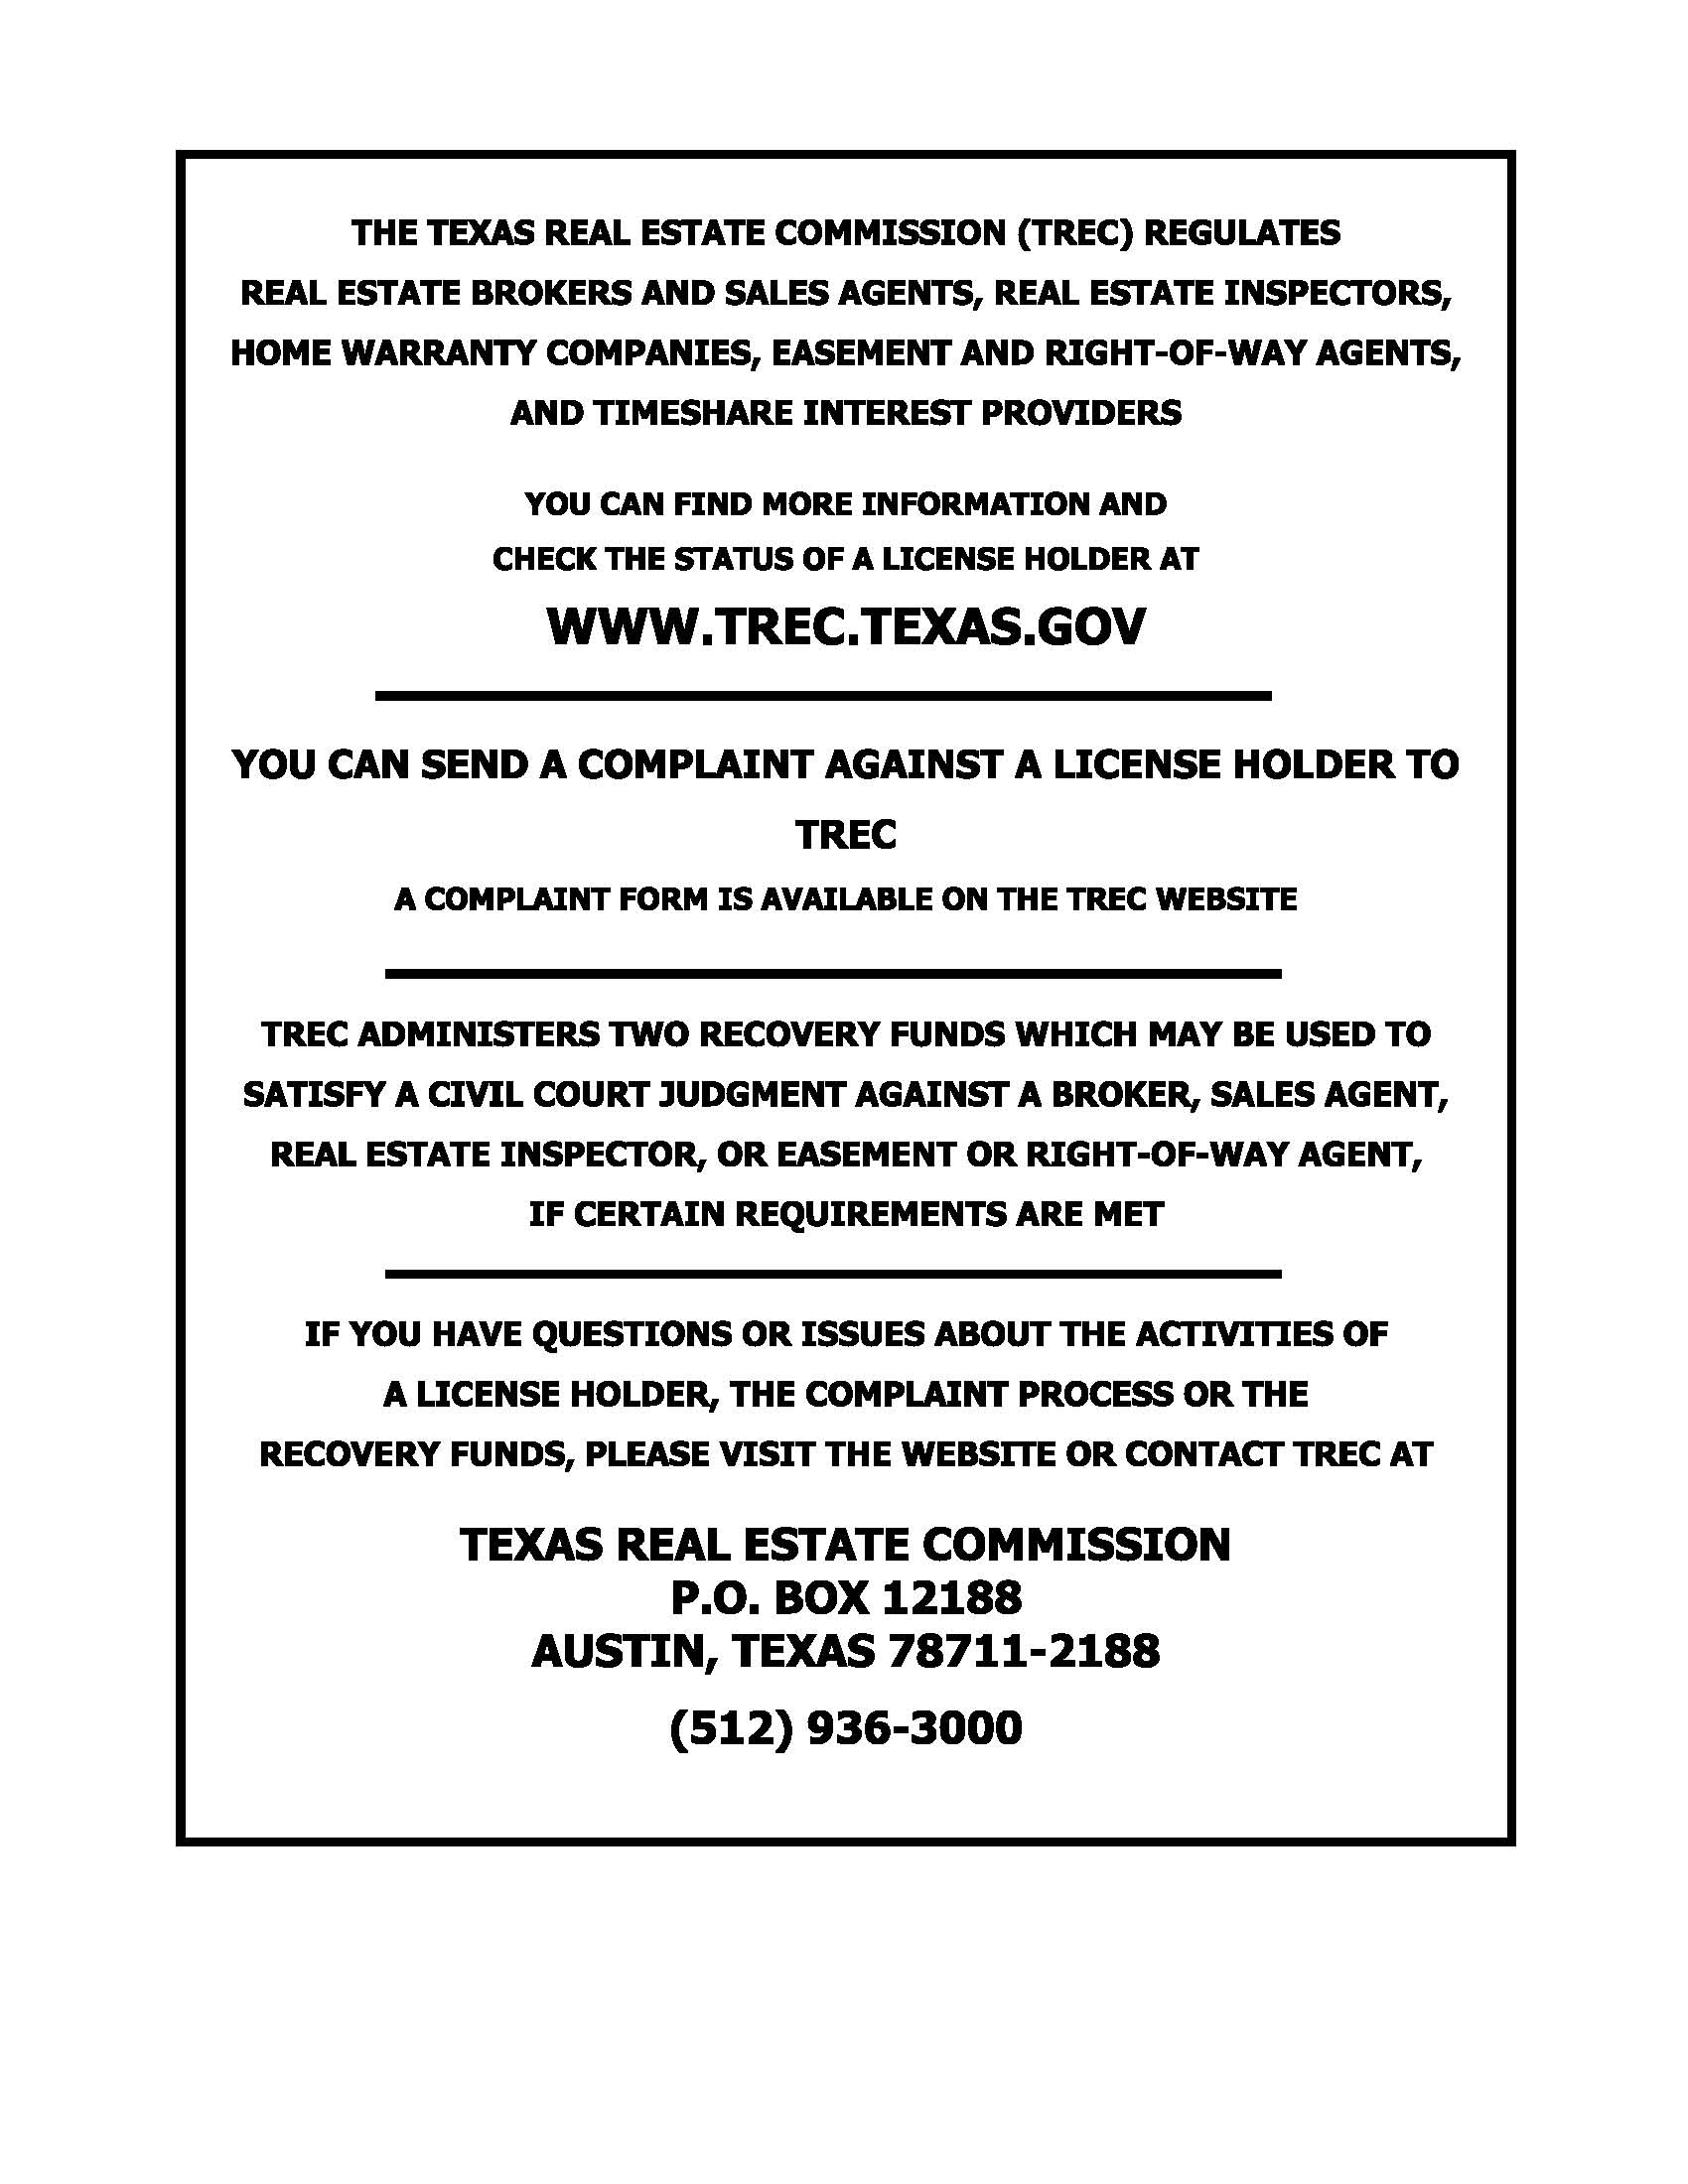 Legacy Land and Ranches, Eric Williams, TREC Notice